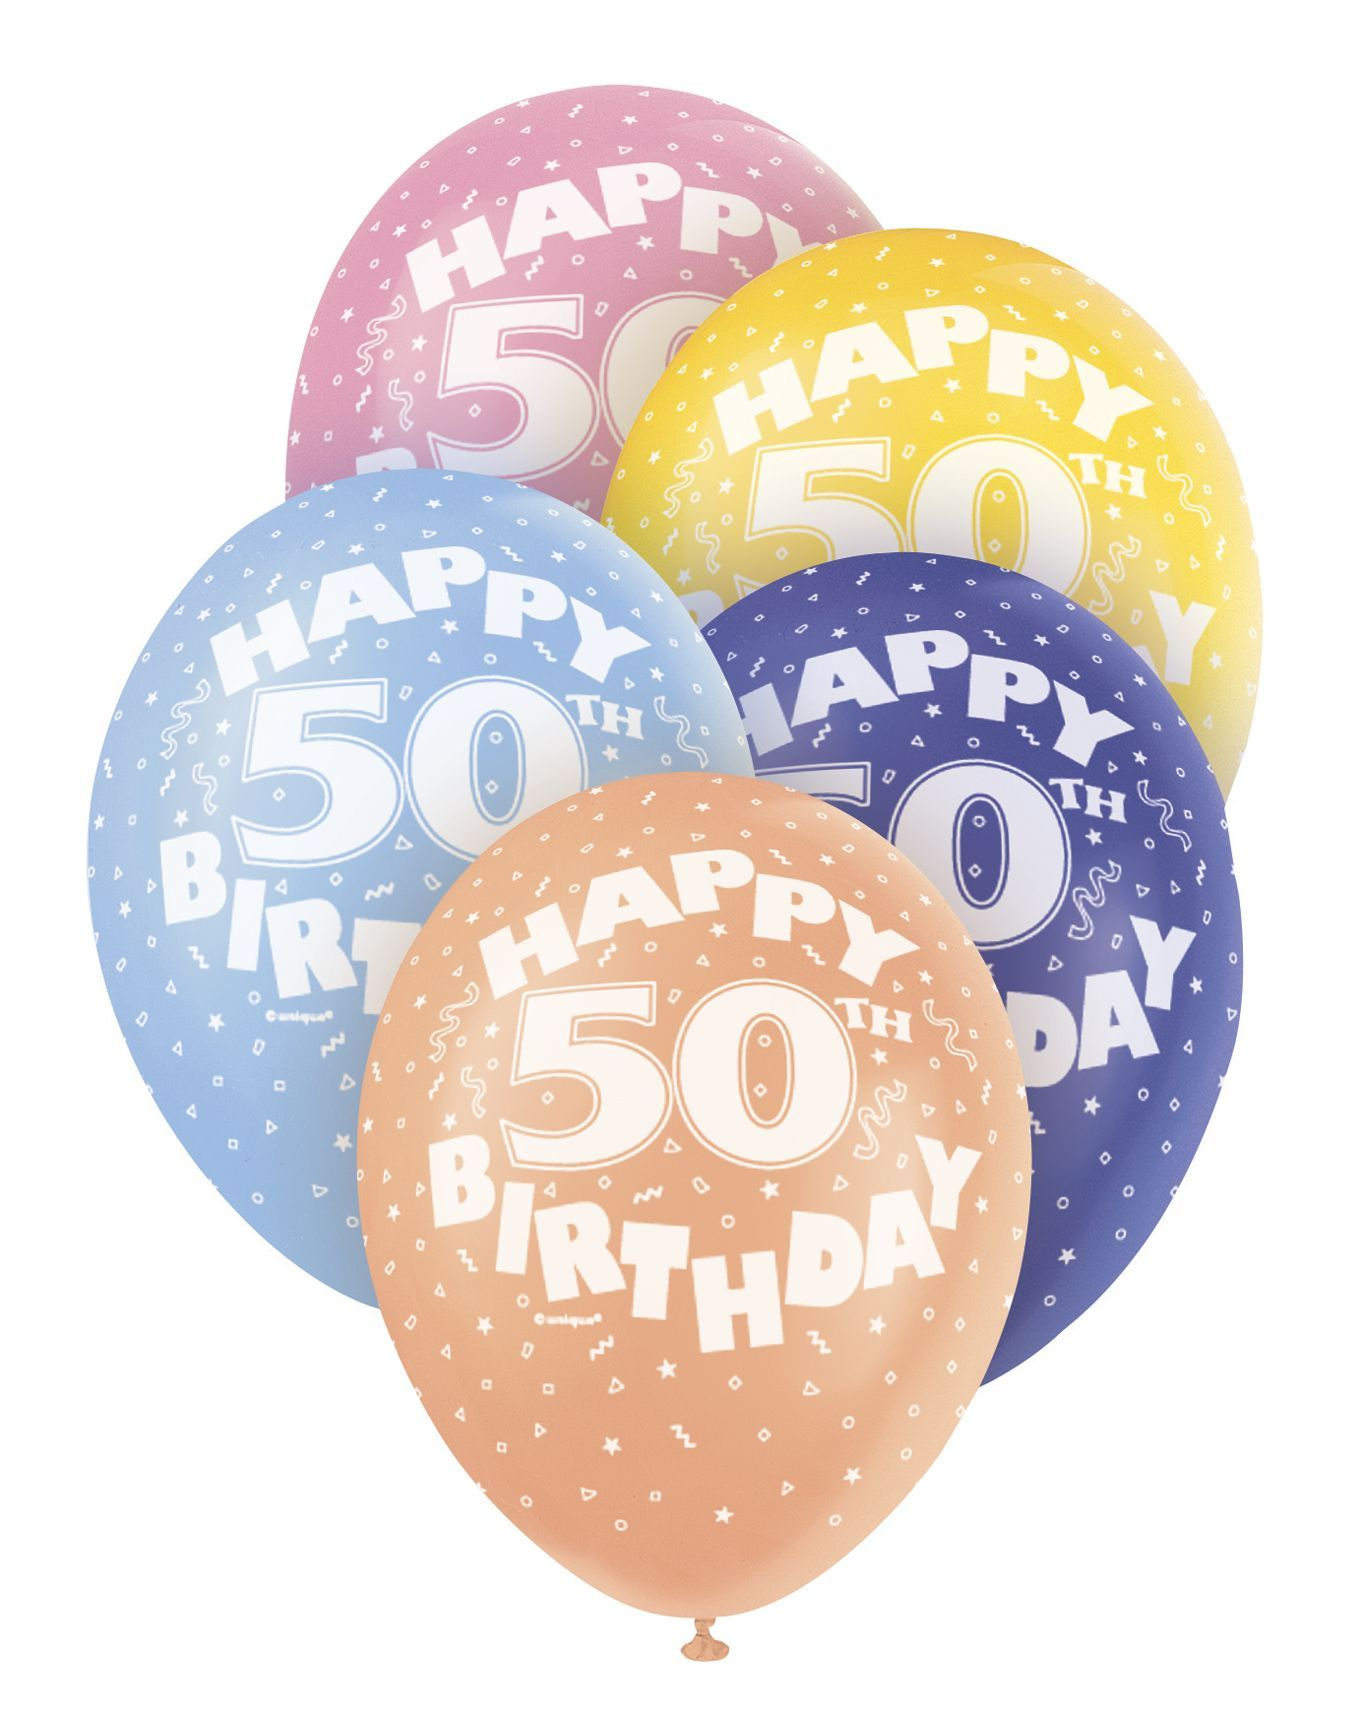 Pearlized Happy 50th Birthday Balloons 5 X 12 Colours May Vary